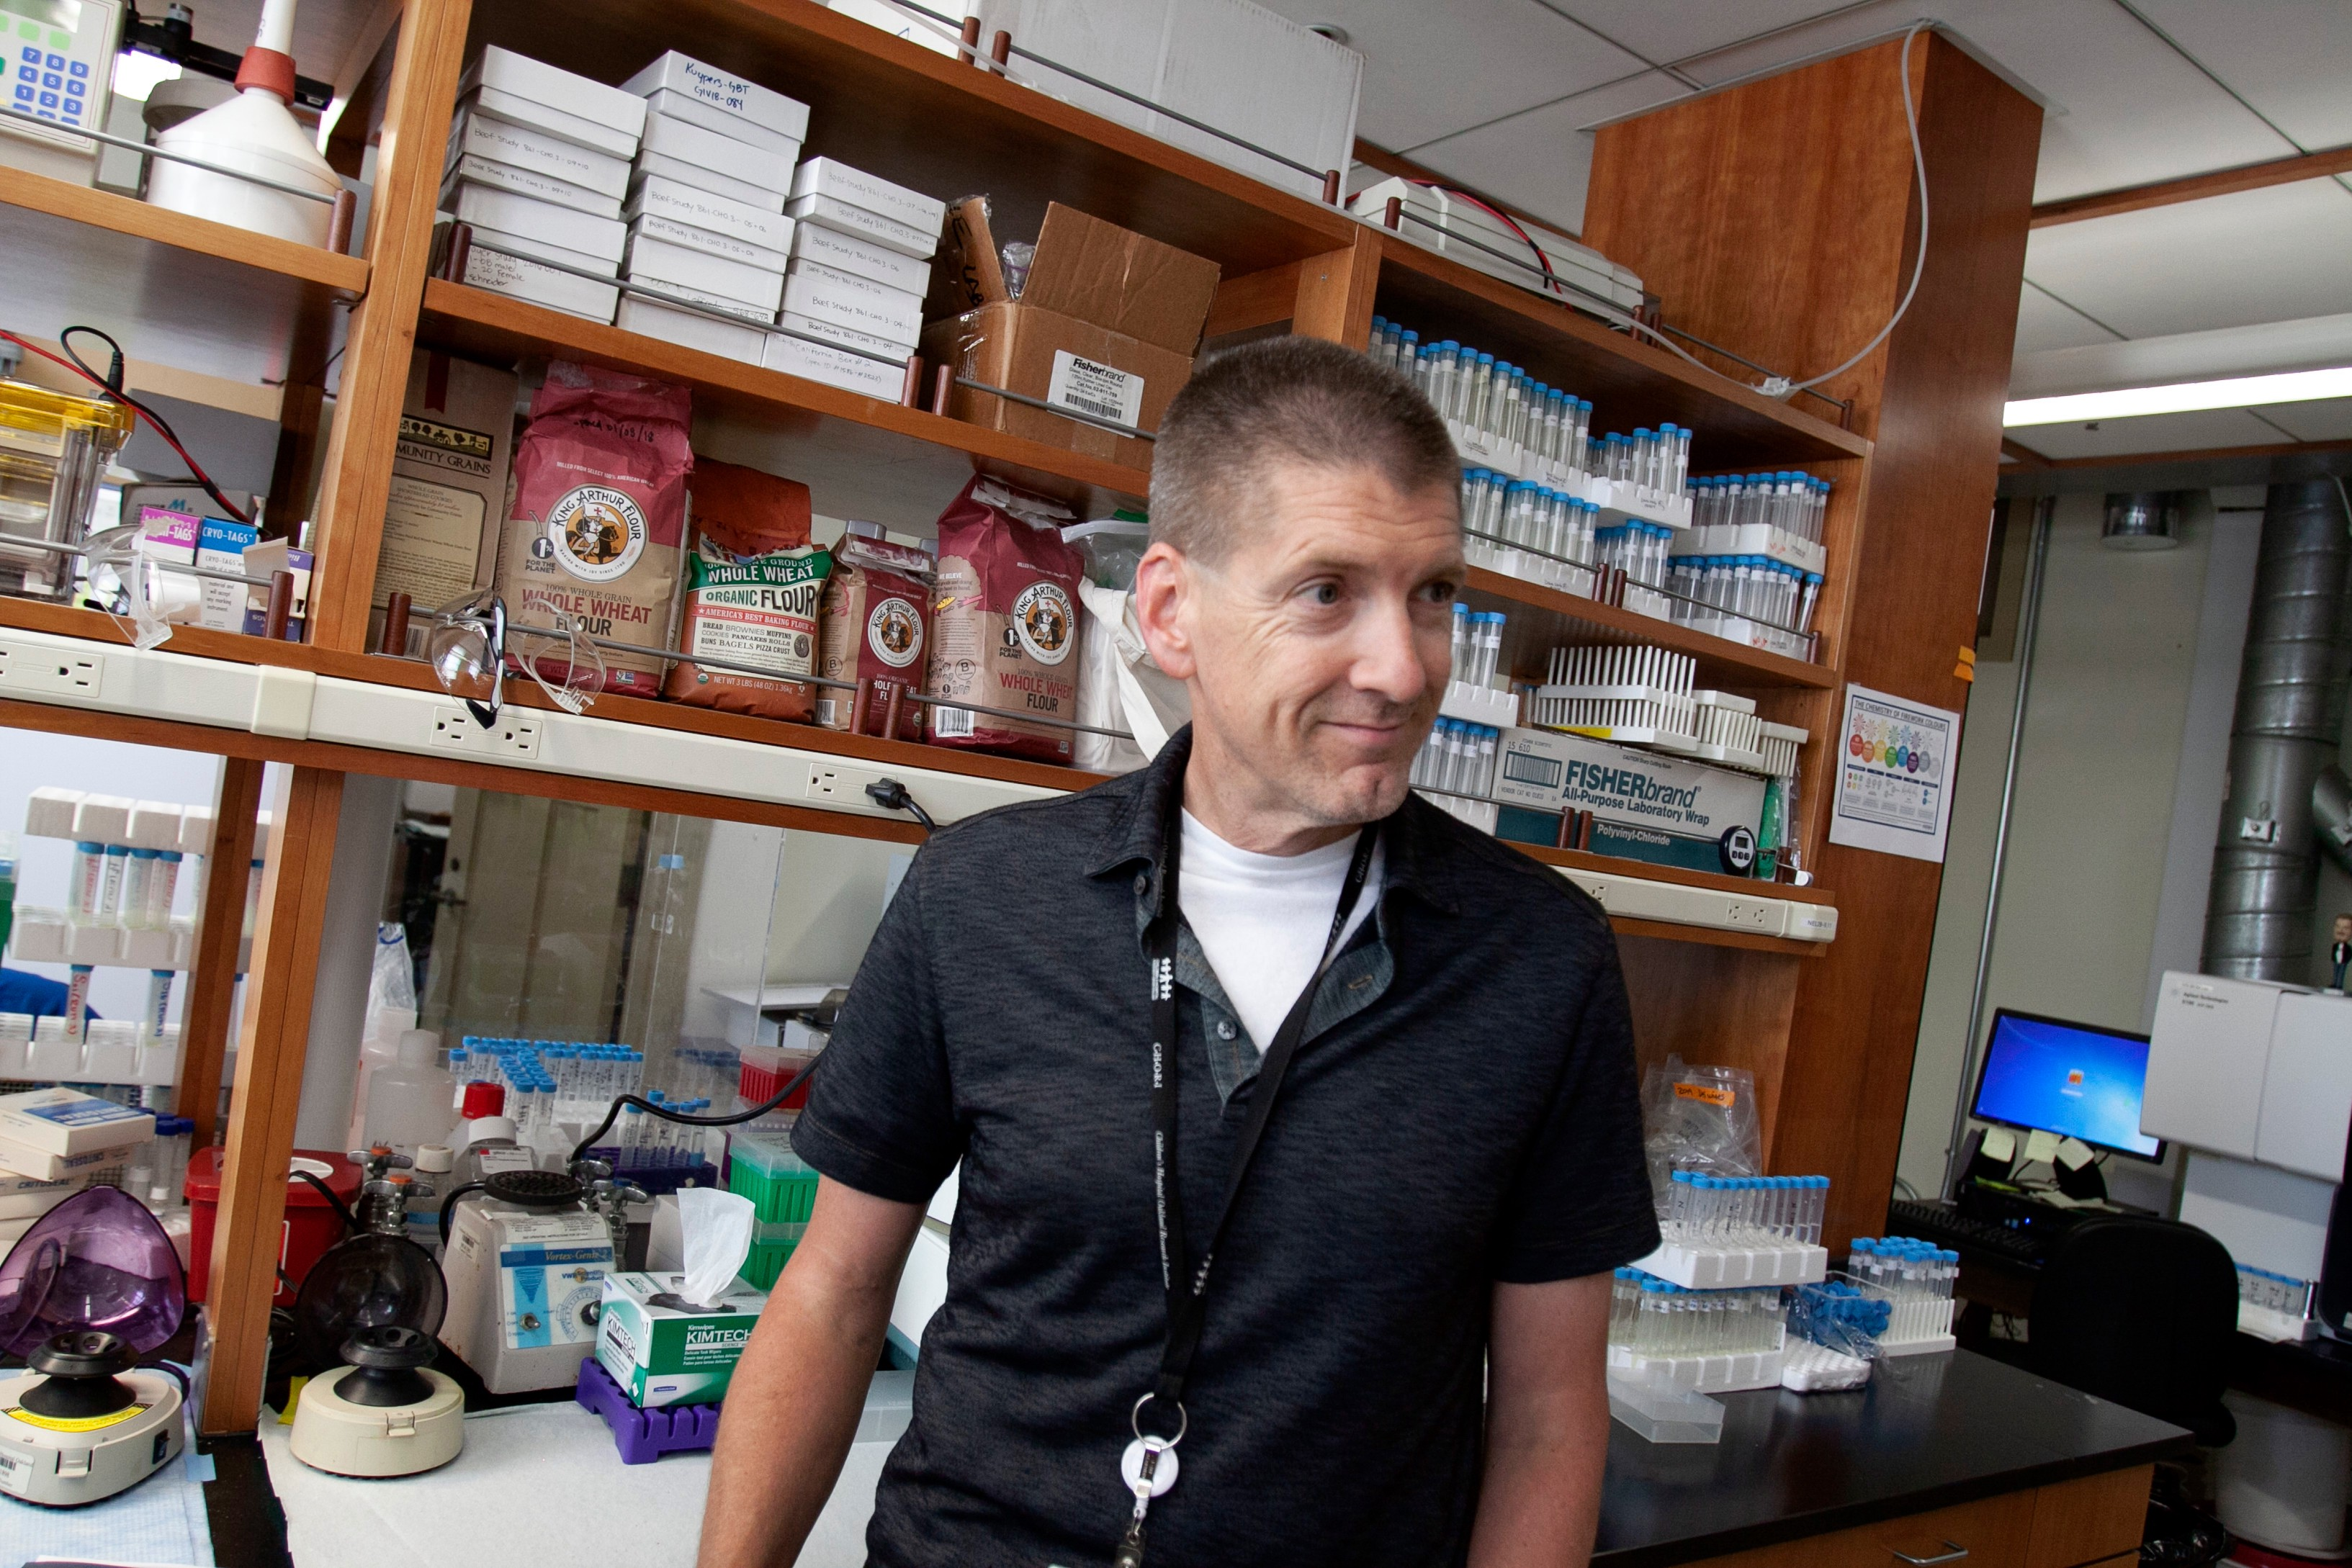 Dr. David Killilea standing in a laboratory, in front of a desk with shelves with Bob's Red Mill flour and testing equipment.